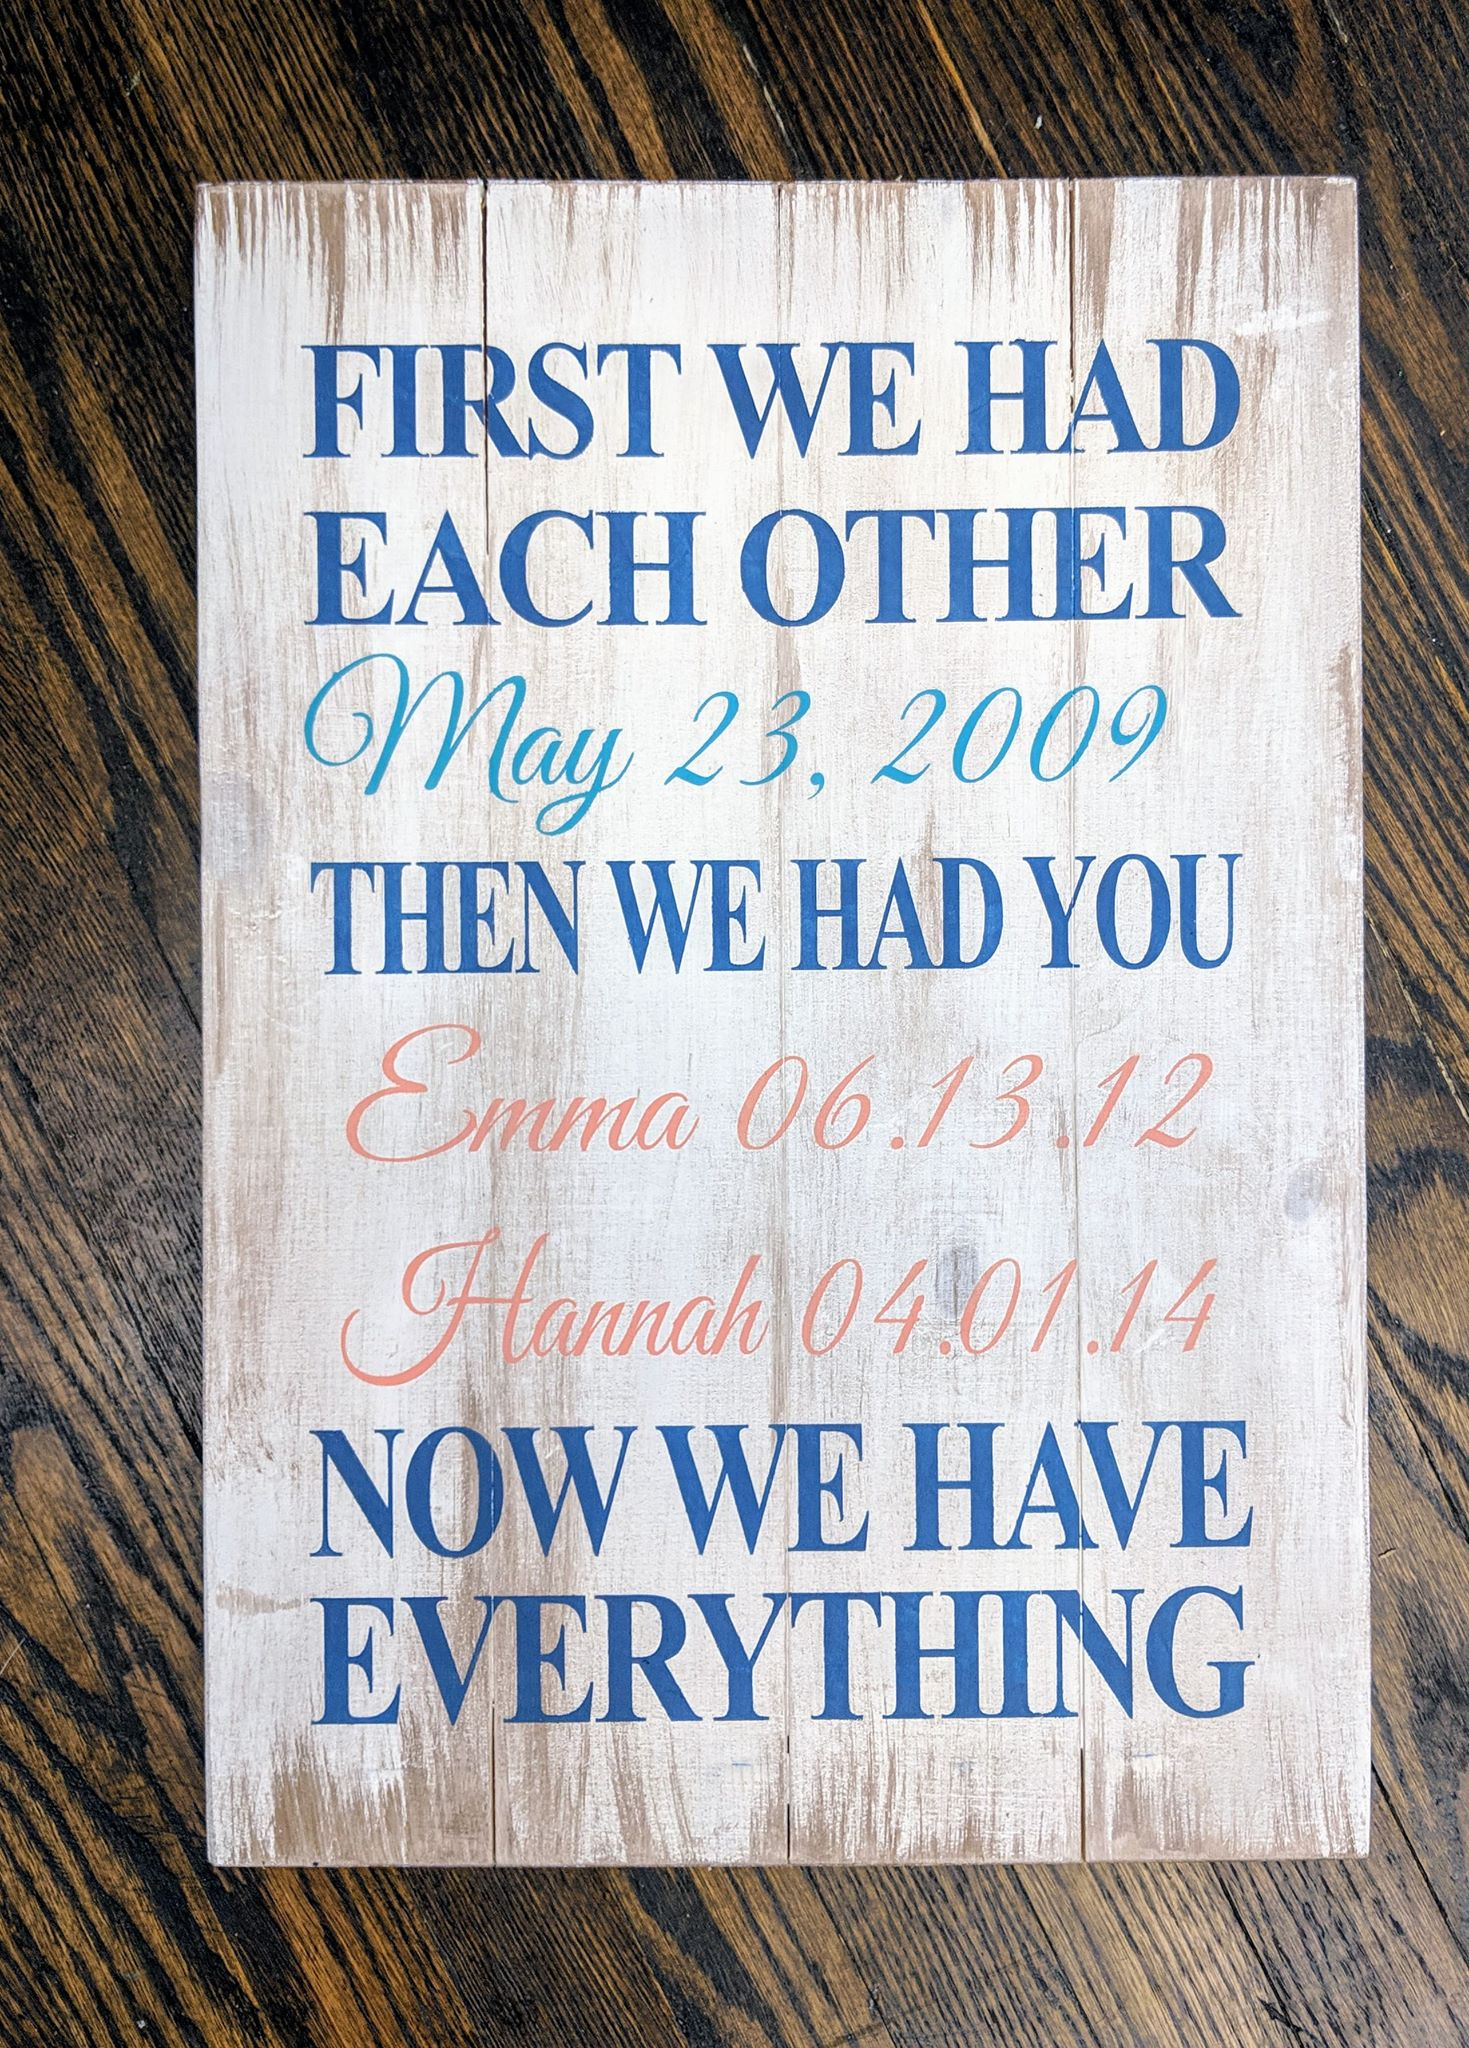 First we had each other-Date and children's names and birth dates